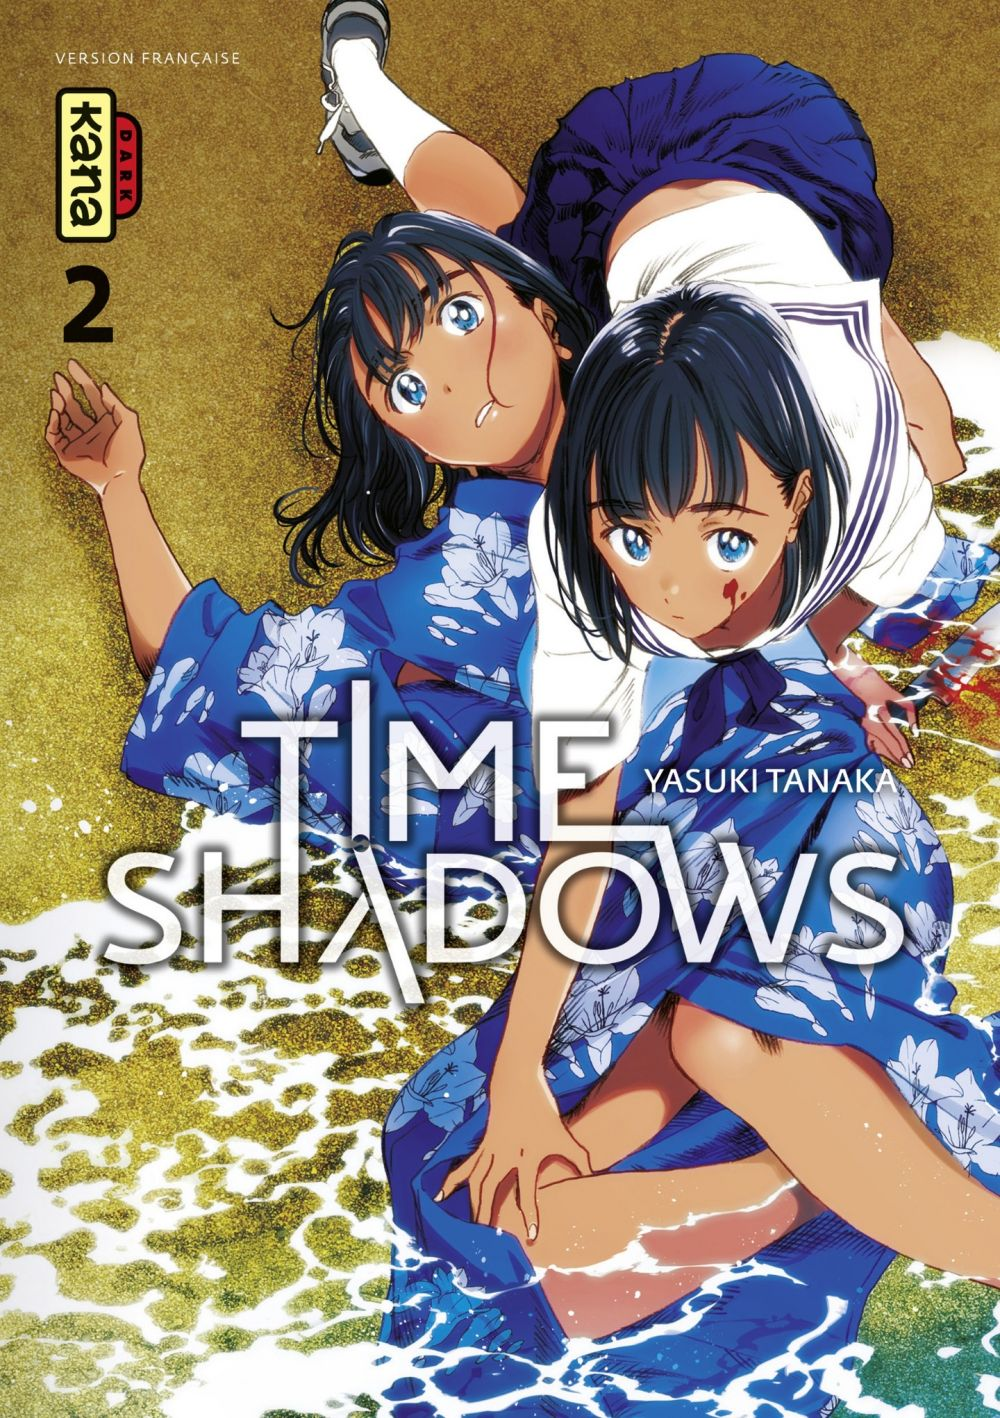 Time shadows - Tome 2